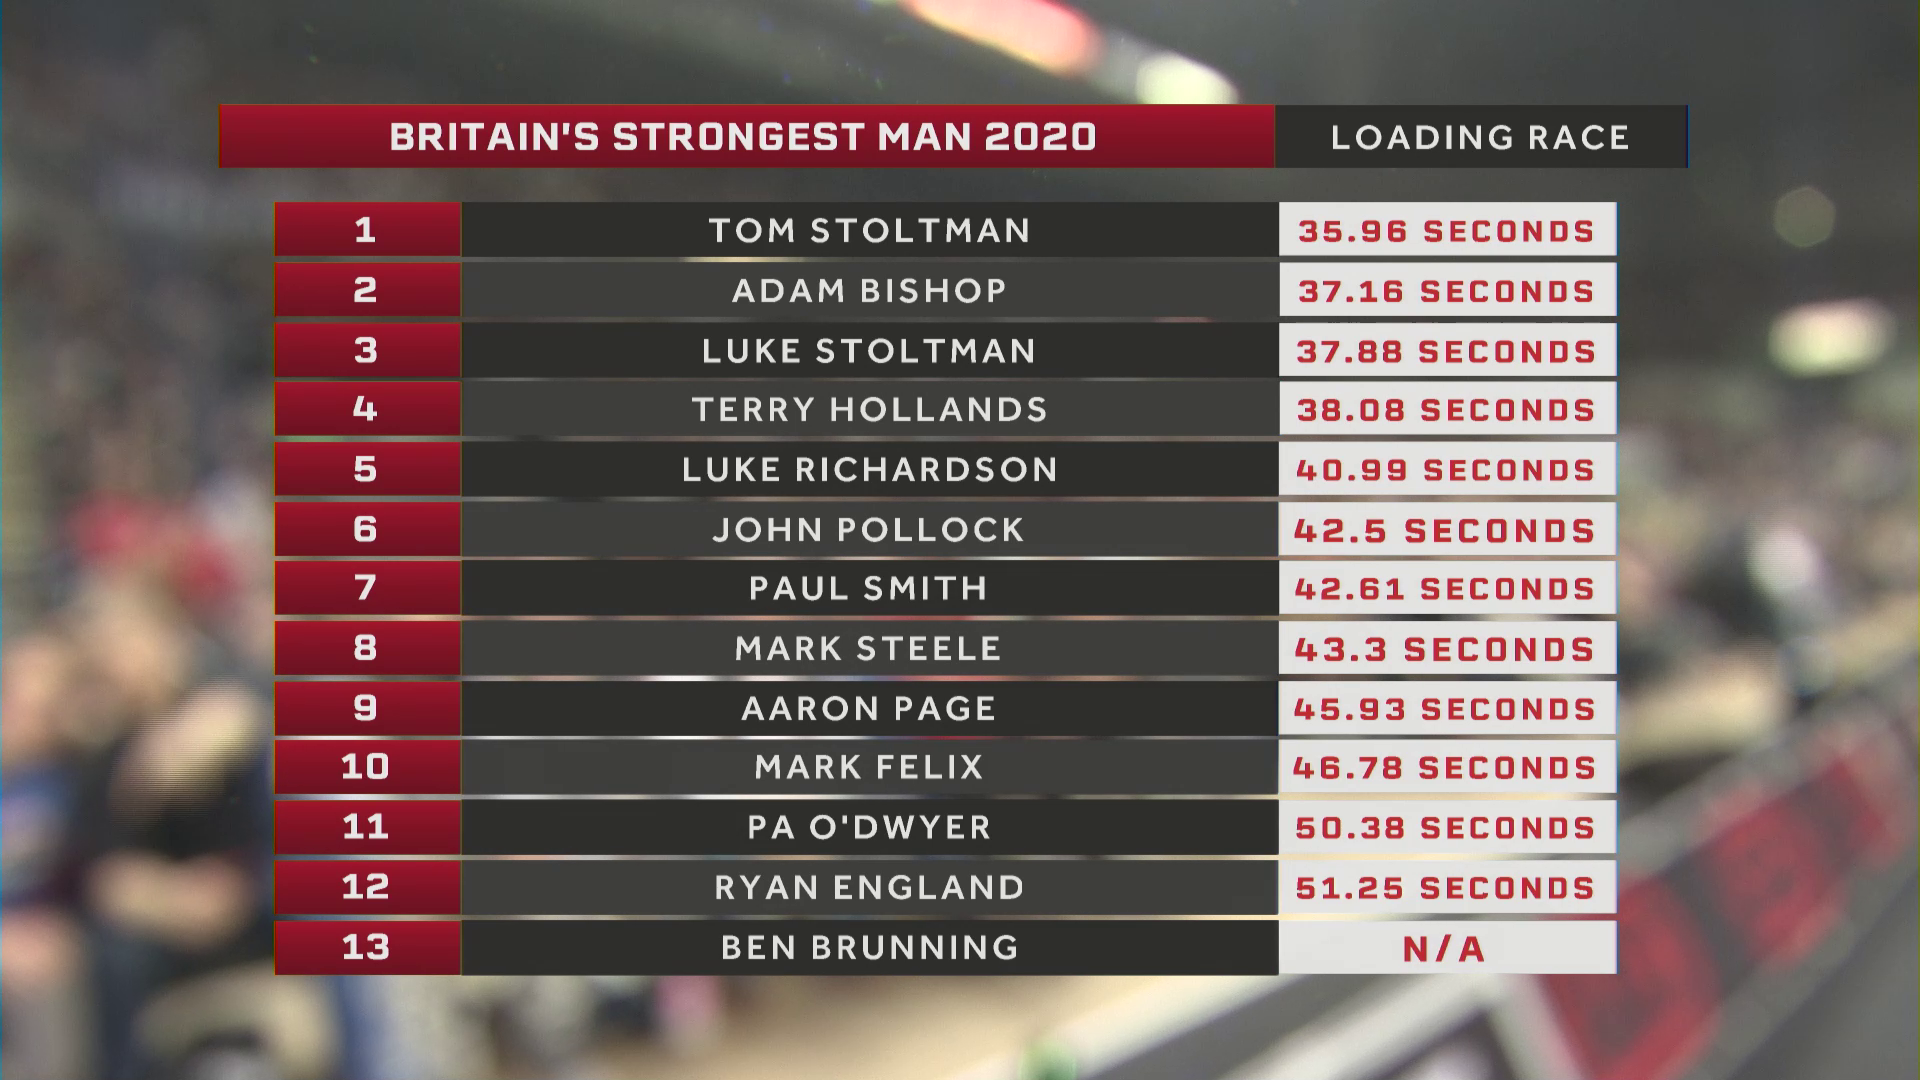 Loading race britains strongest man